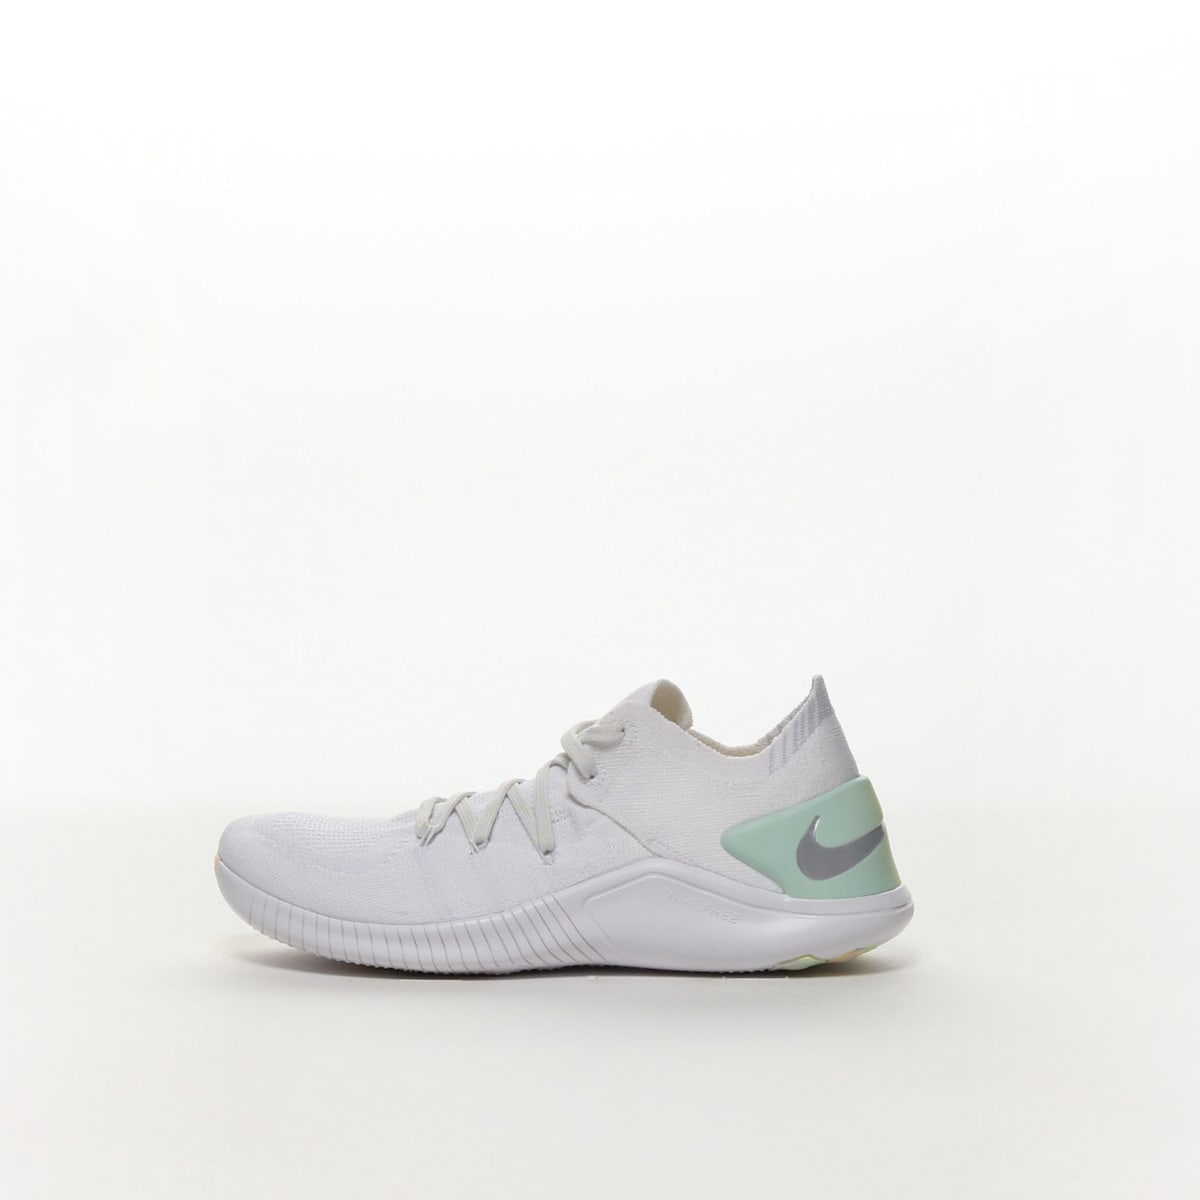 28c2871bd0c35 Nike Free TR Flyknit 3 Rise Women s Training Shoe - WHITE SUMMIT ...